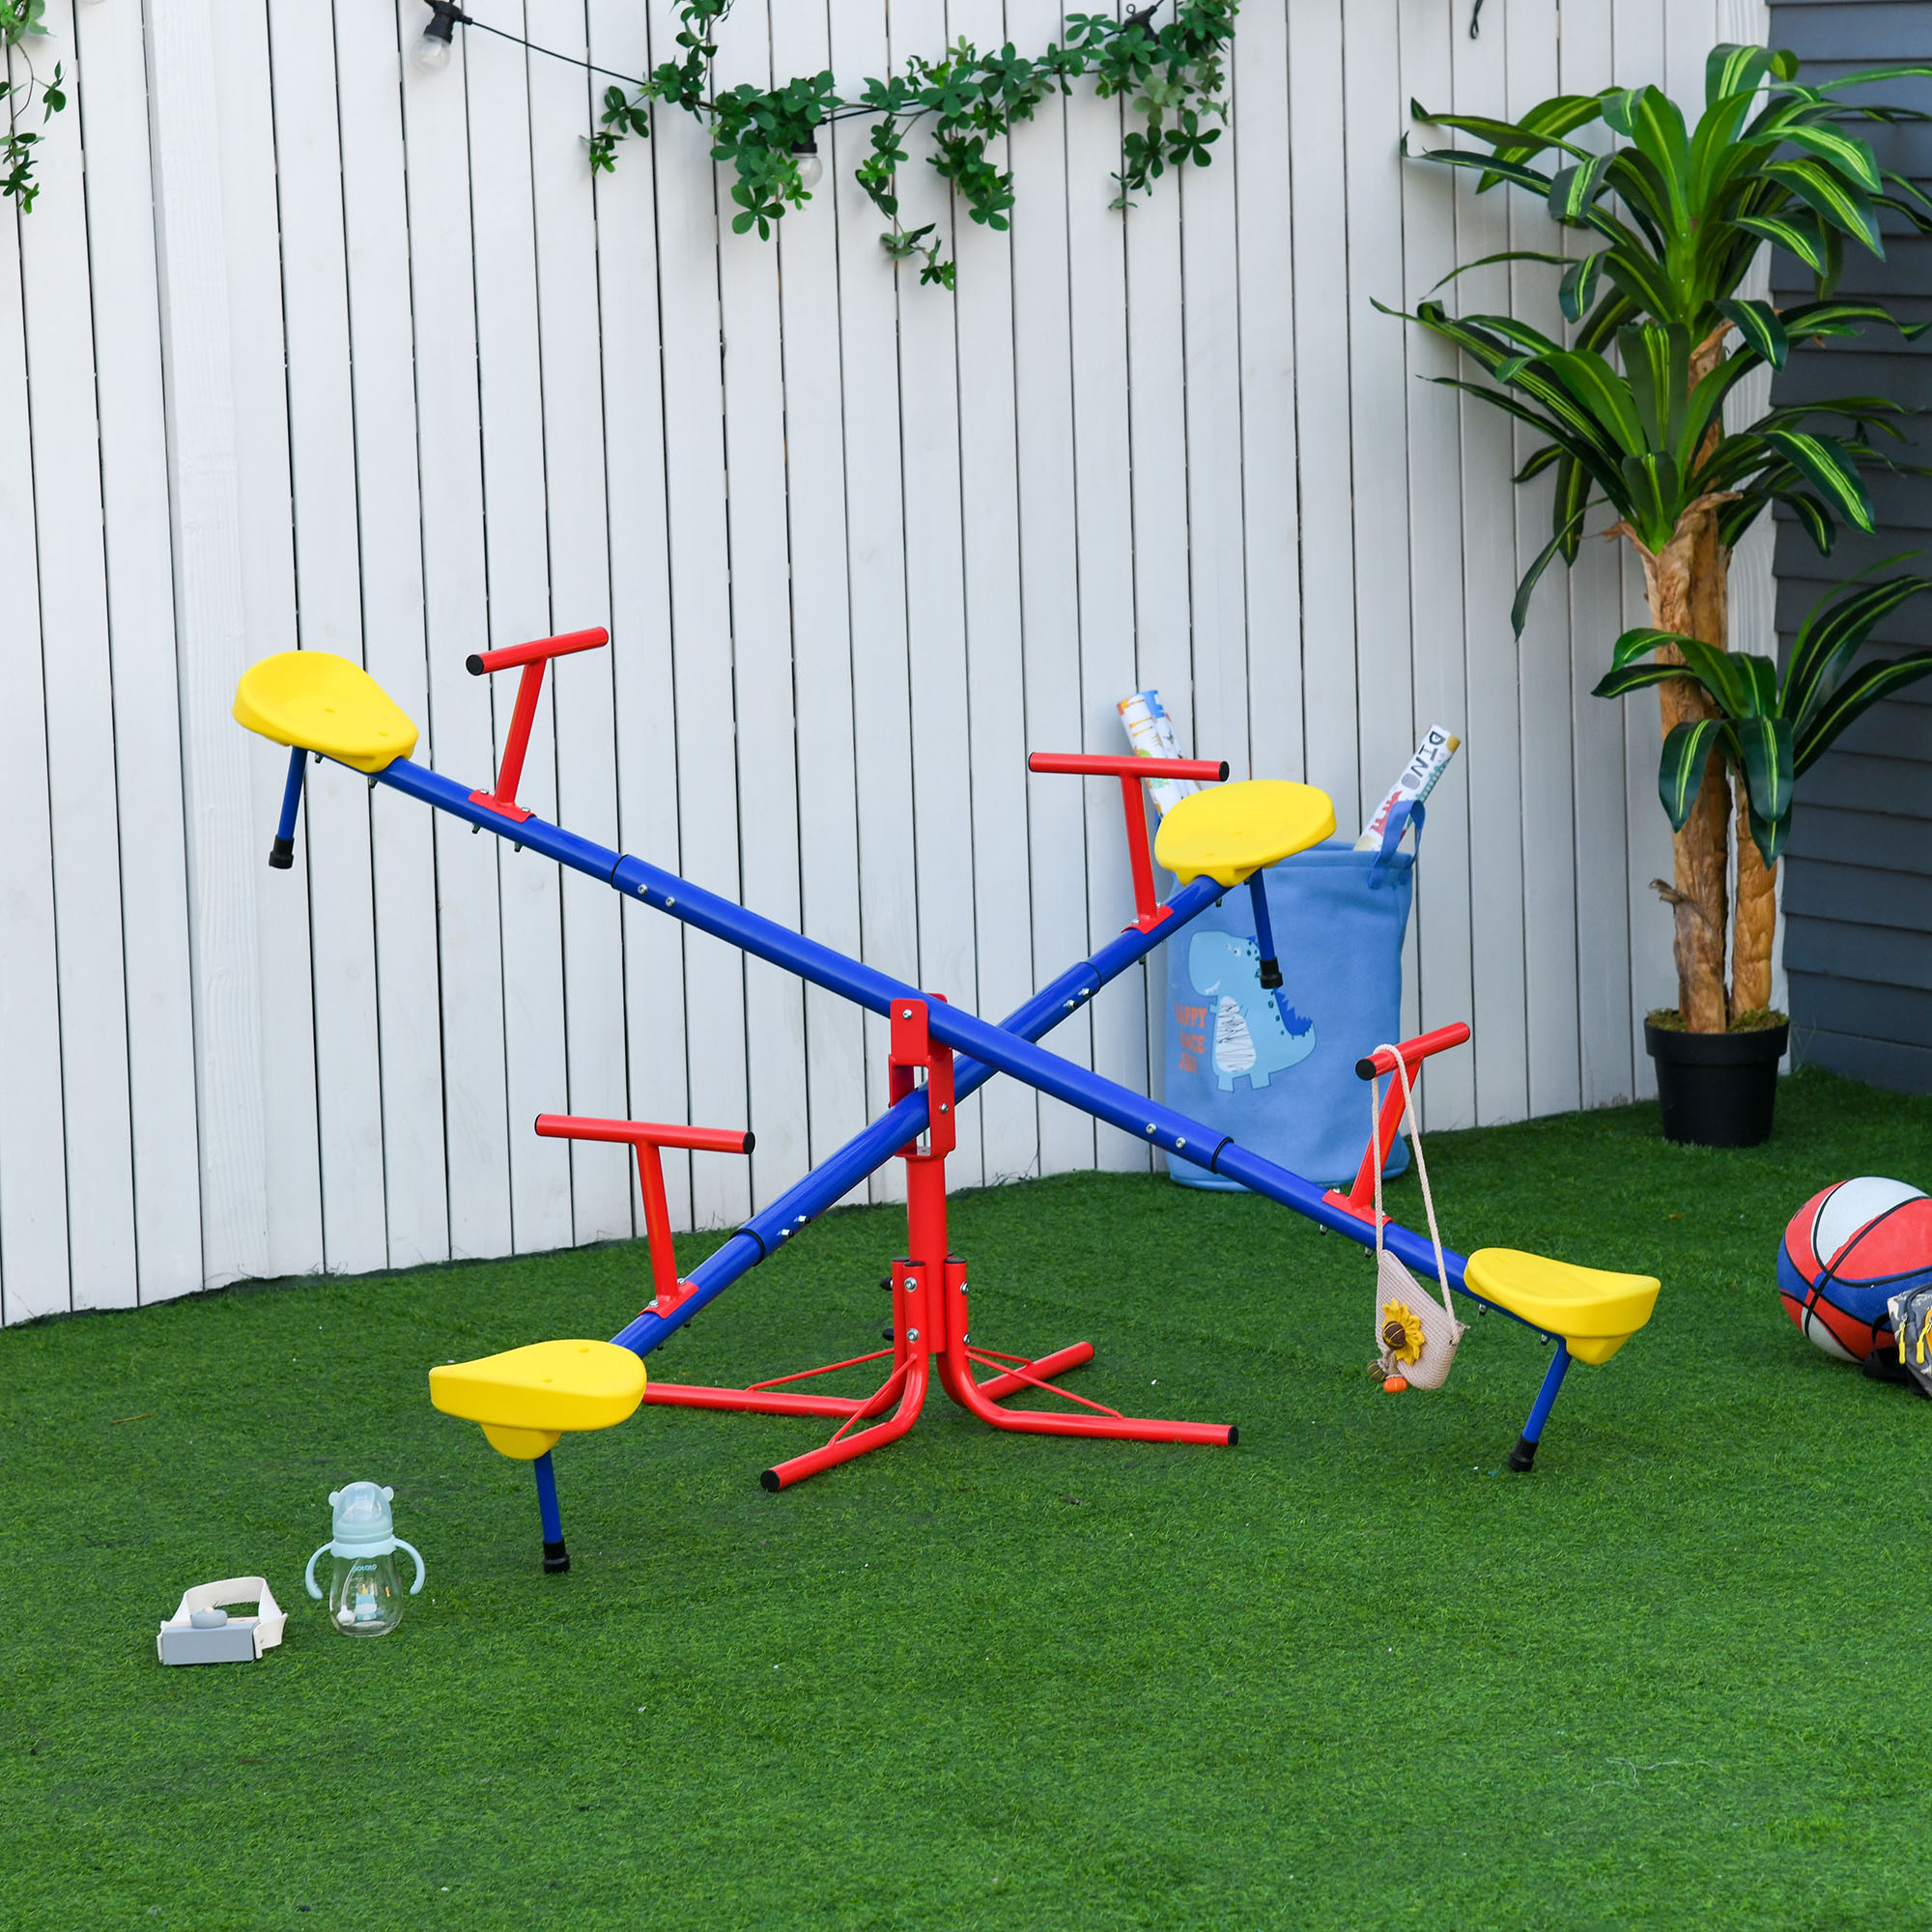 Outsunny Kids Metal Seesaw Teeter Totter Children's Playground Equipment 4 Seats